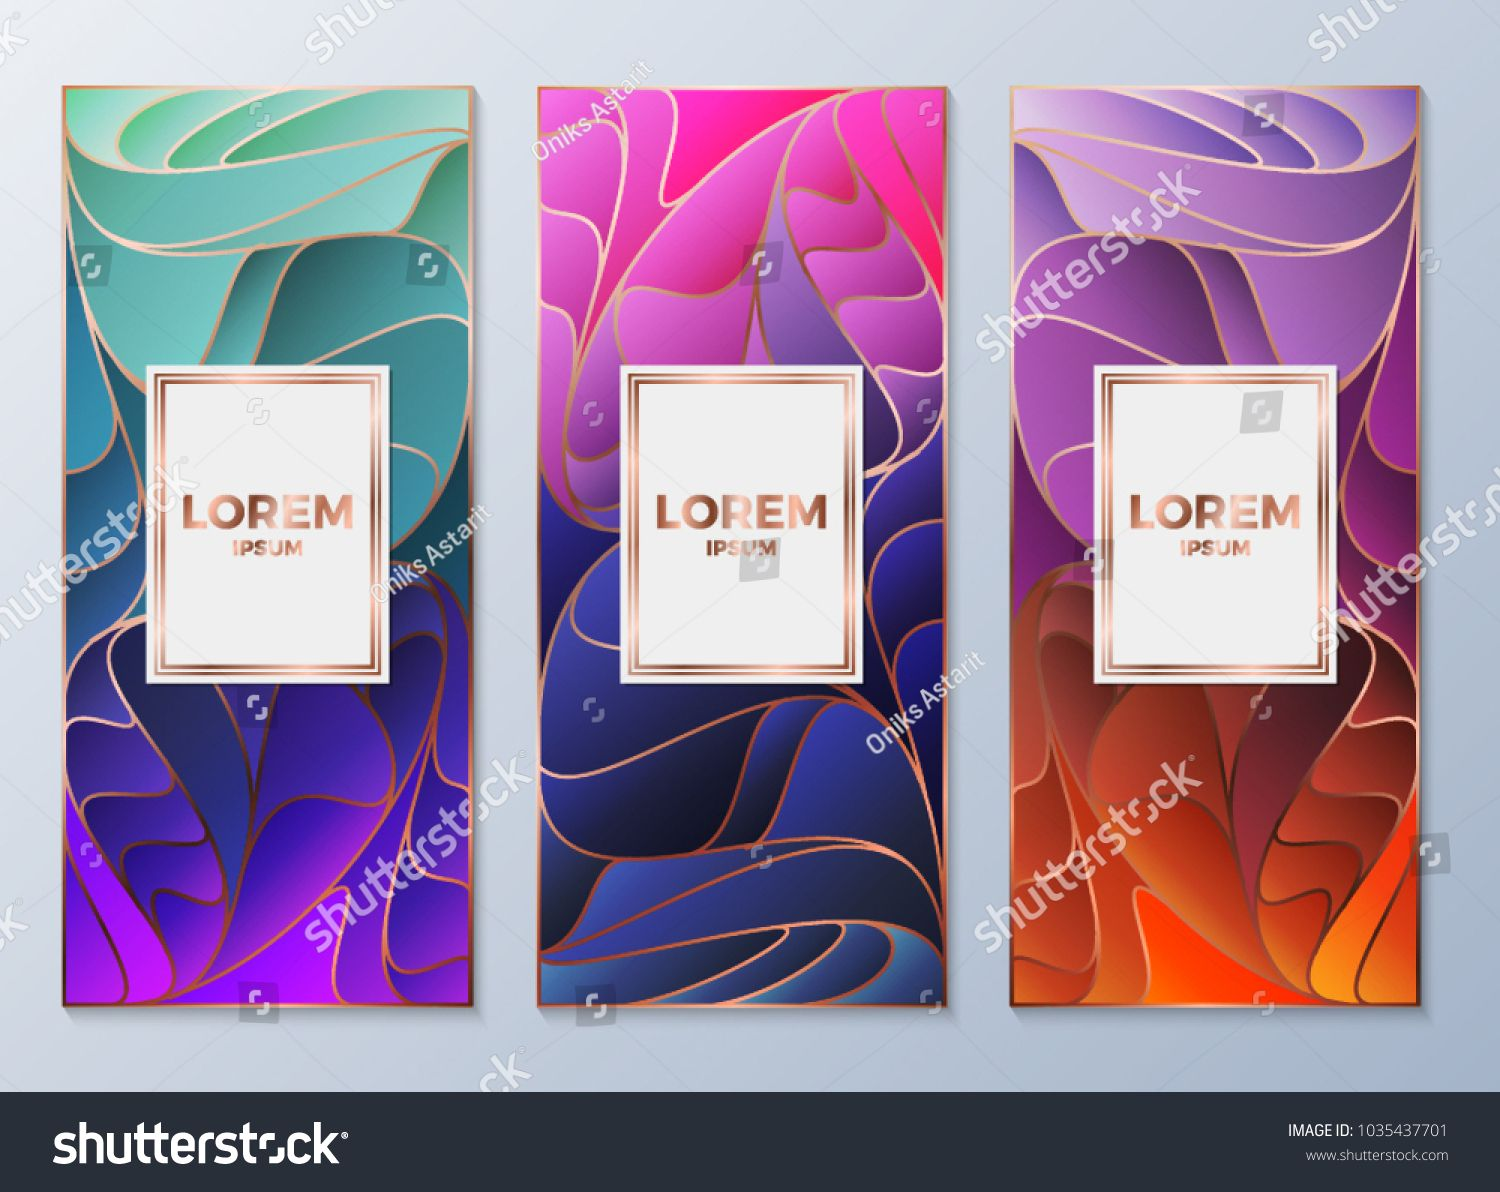 Design Templates For Flyers Booklets Greeting Cards Invitations Packaging And Advertising Vecto Template Design Unique Business Cards Business Card Design